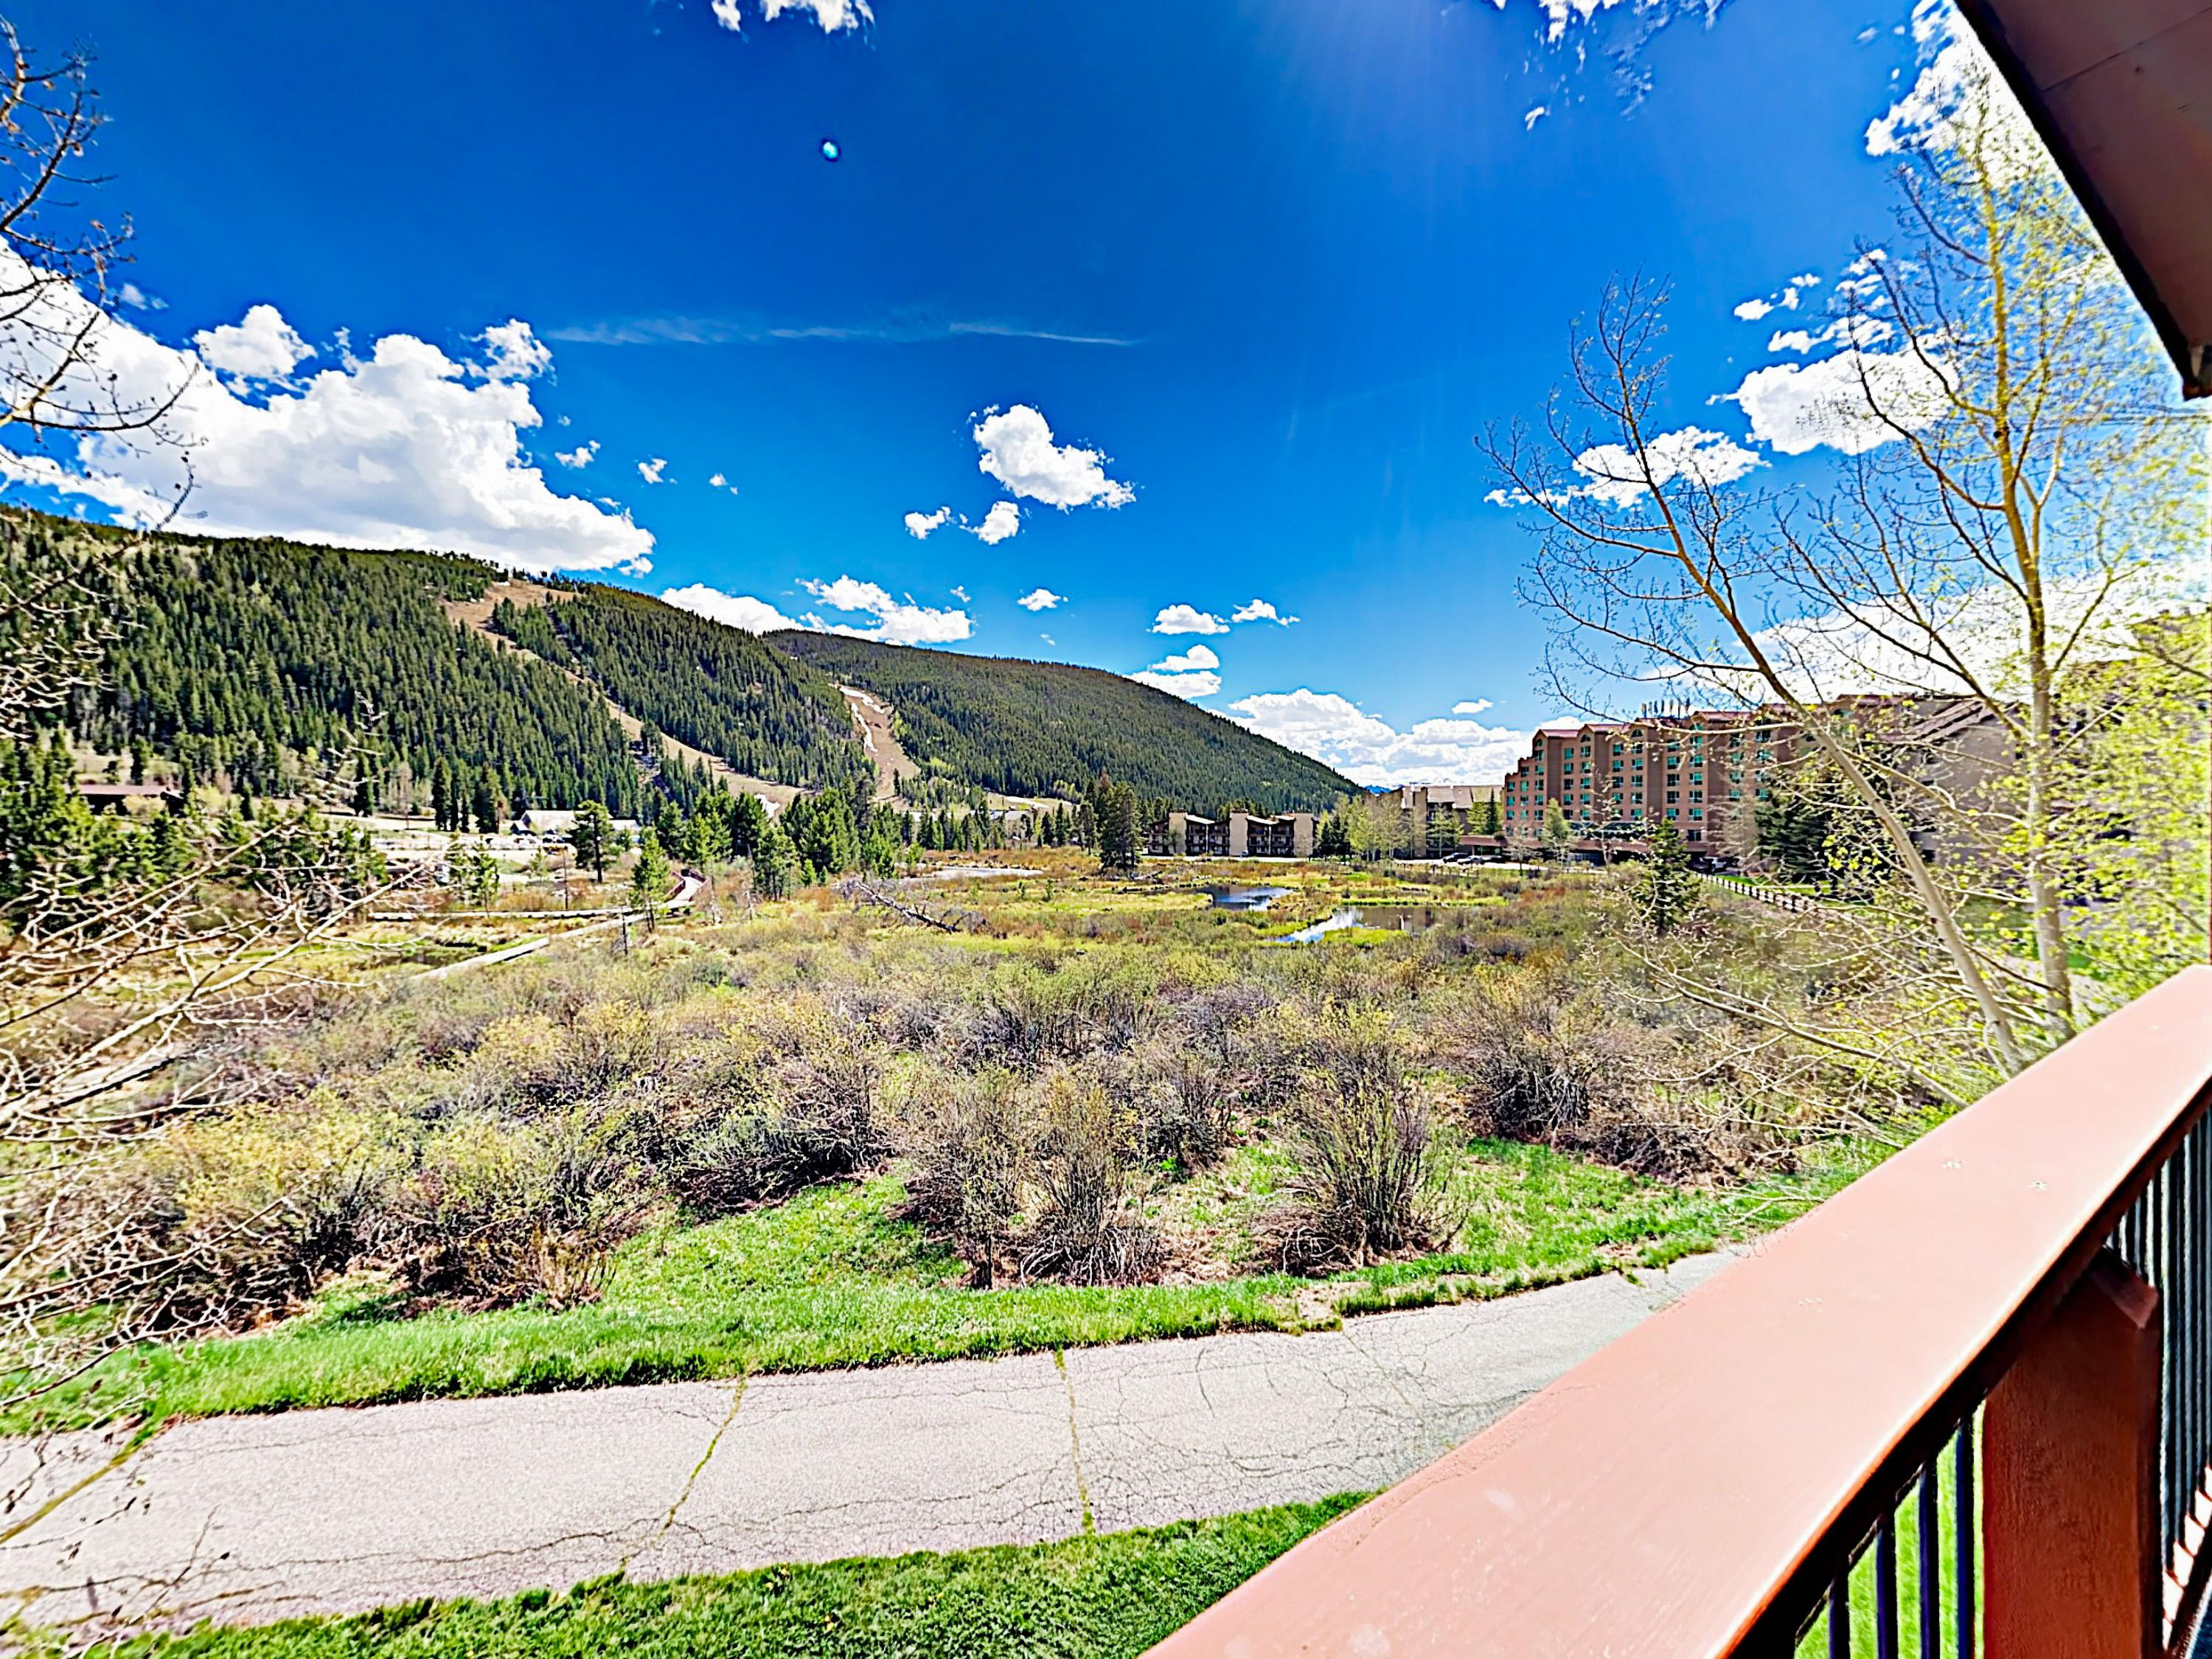 Enjoy unobstructed views of Keystone Resort from the balcony.